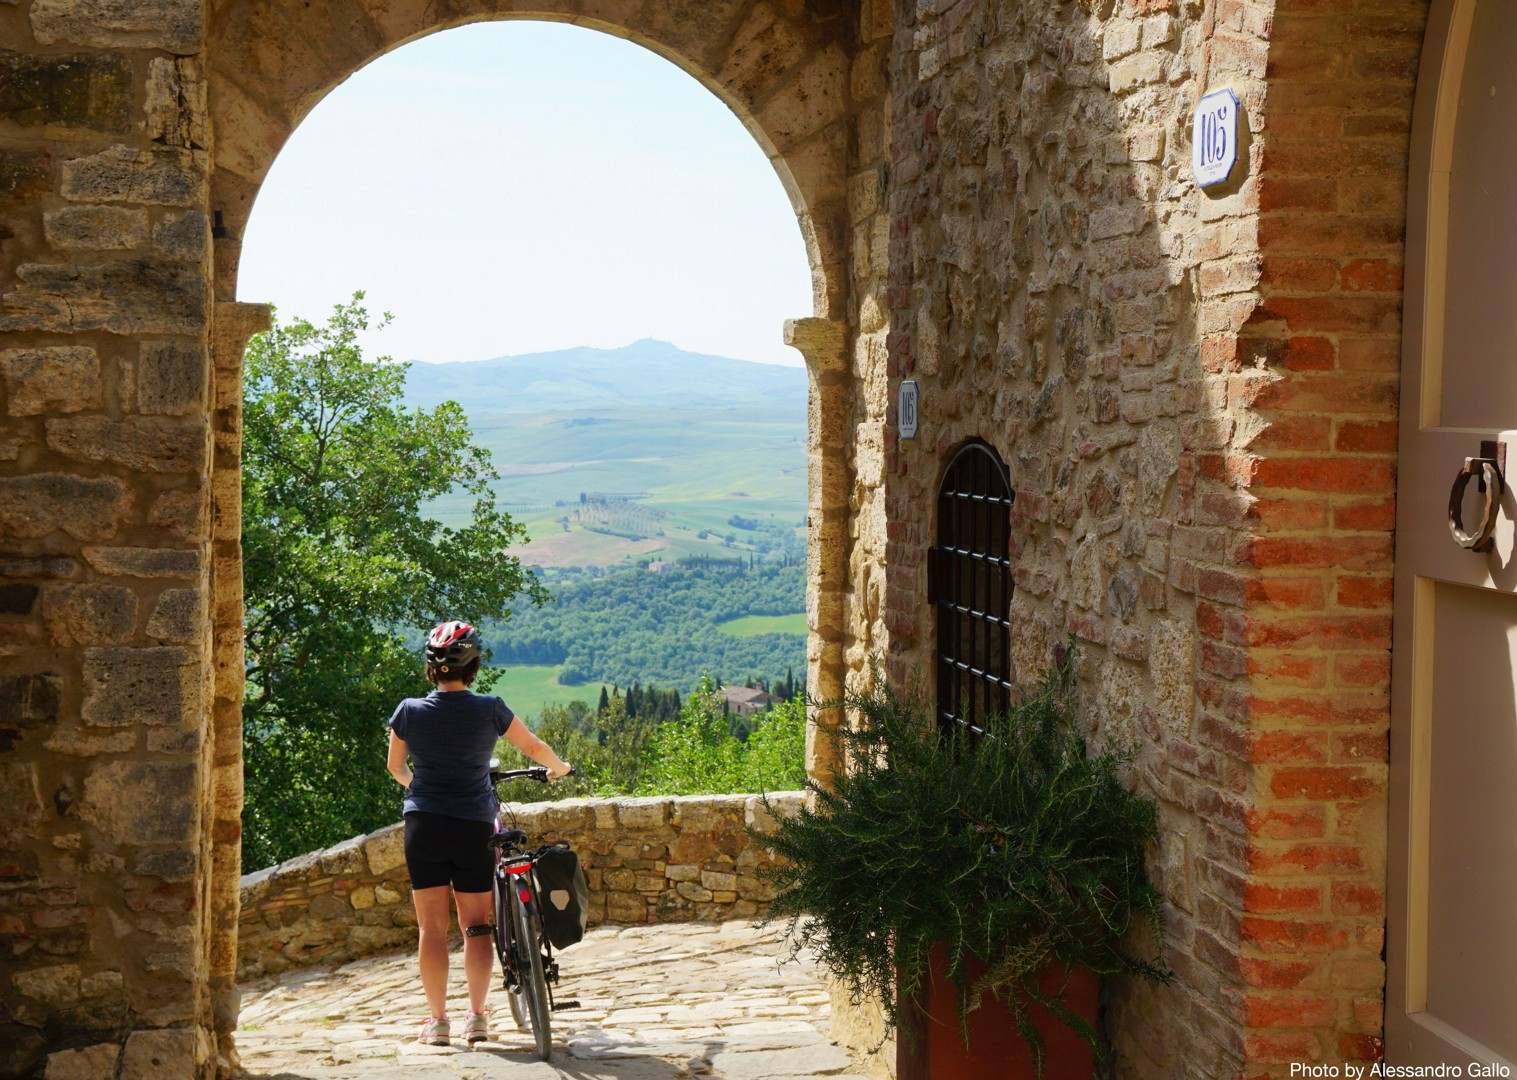 Italy-Via-Francigena-Tuscany-to-Rome-Guided-Leisure-Cycling-Holiday-beautiful-riding-through-old-towns - Italy - Via Francigena (Tuscany to Rome) - Guided Leisure Cycling Holiday - Italia Leisure and Family Cycling